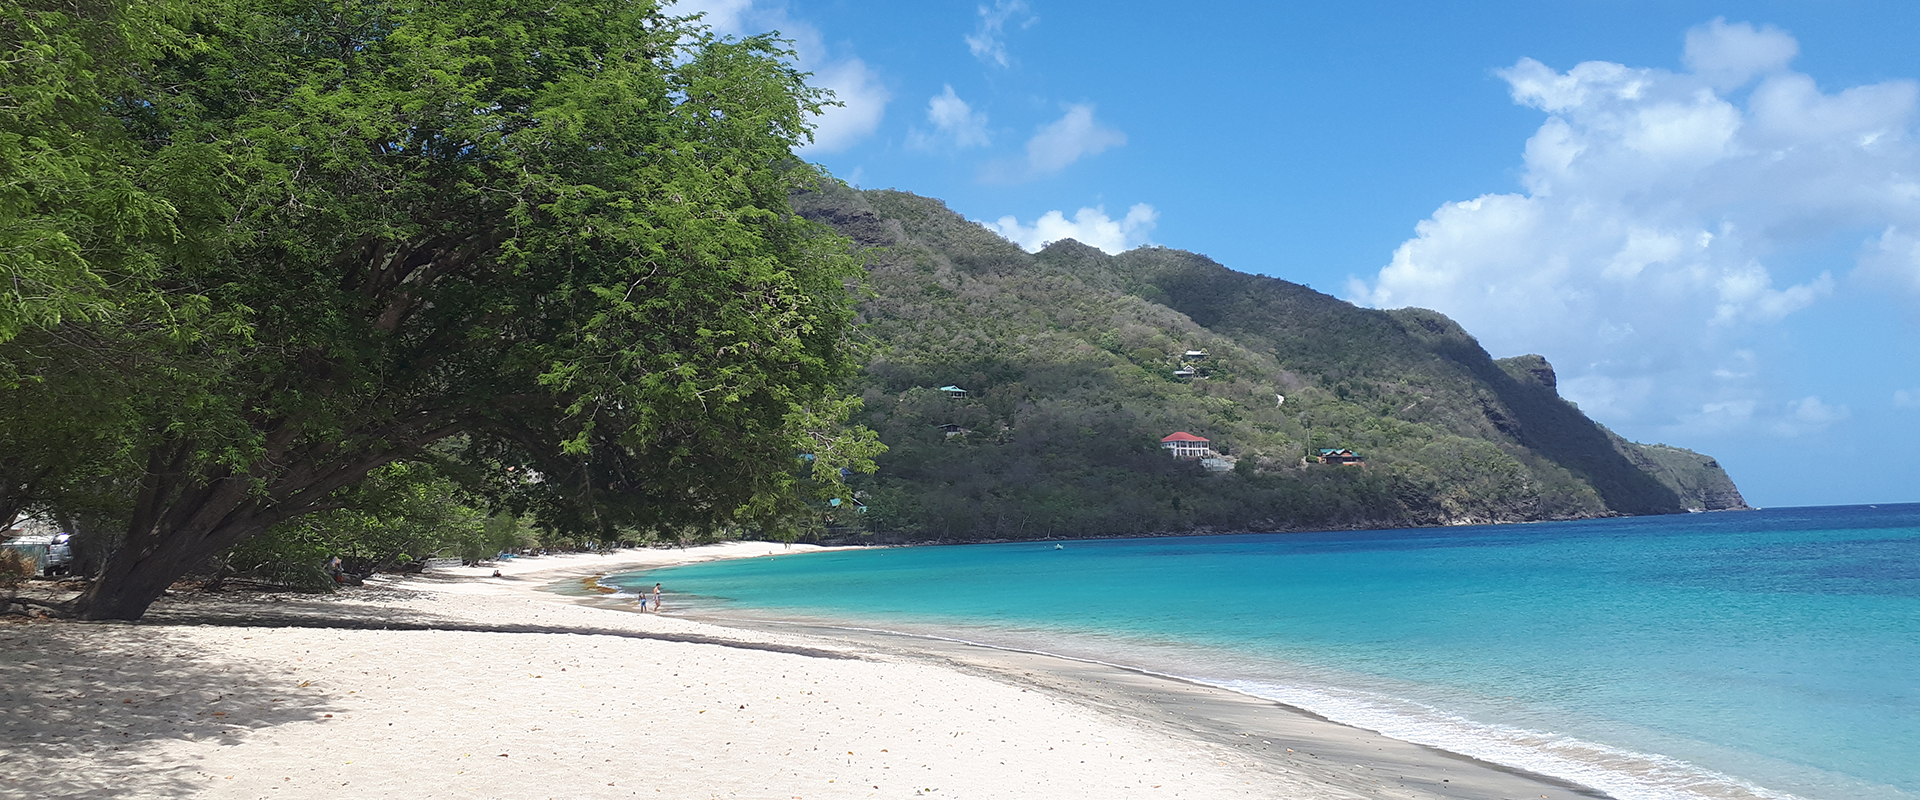 Boutique Villa & Apartments, Bequia, Caribbean